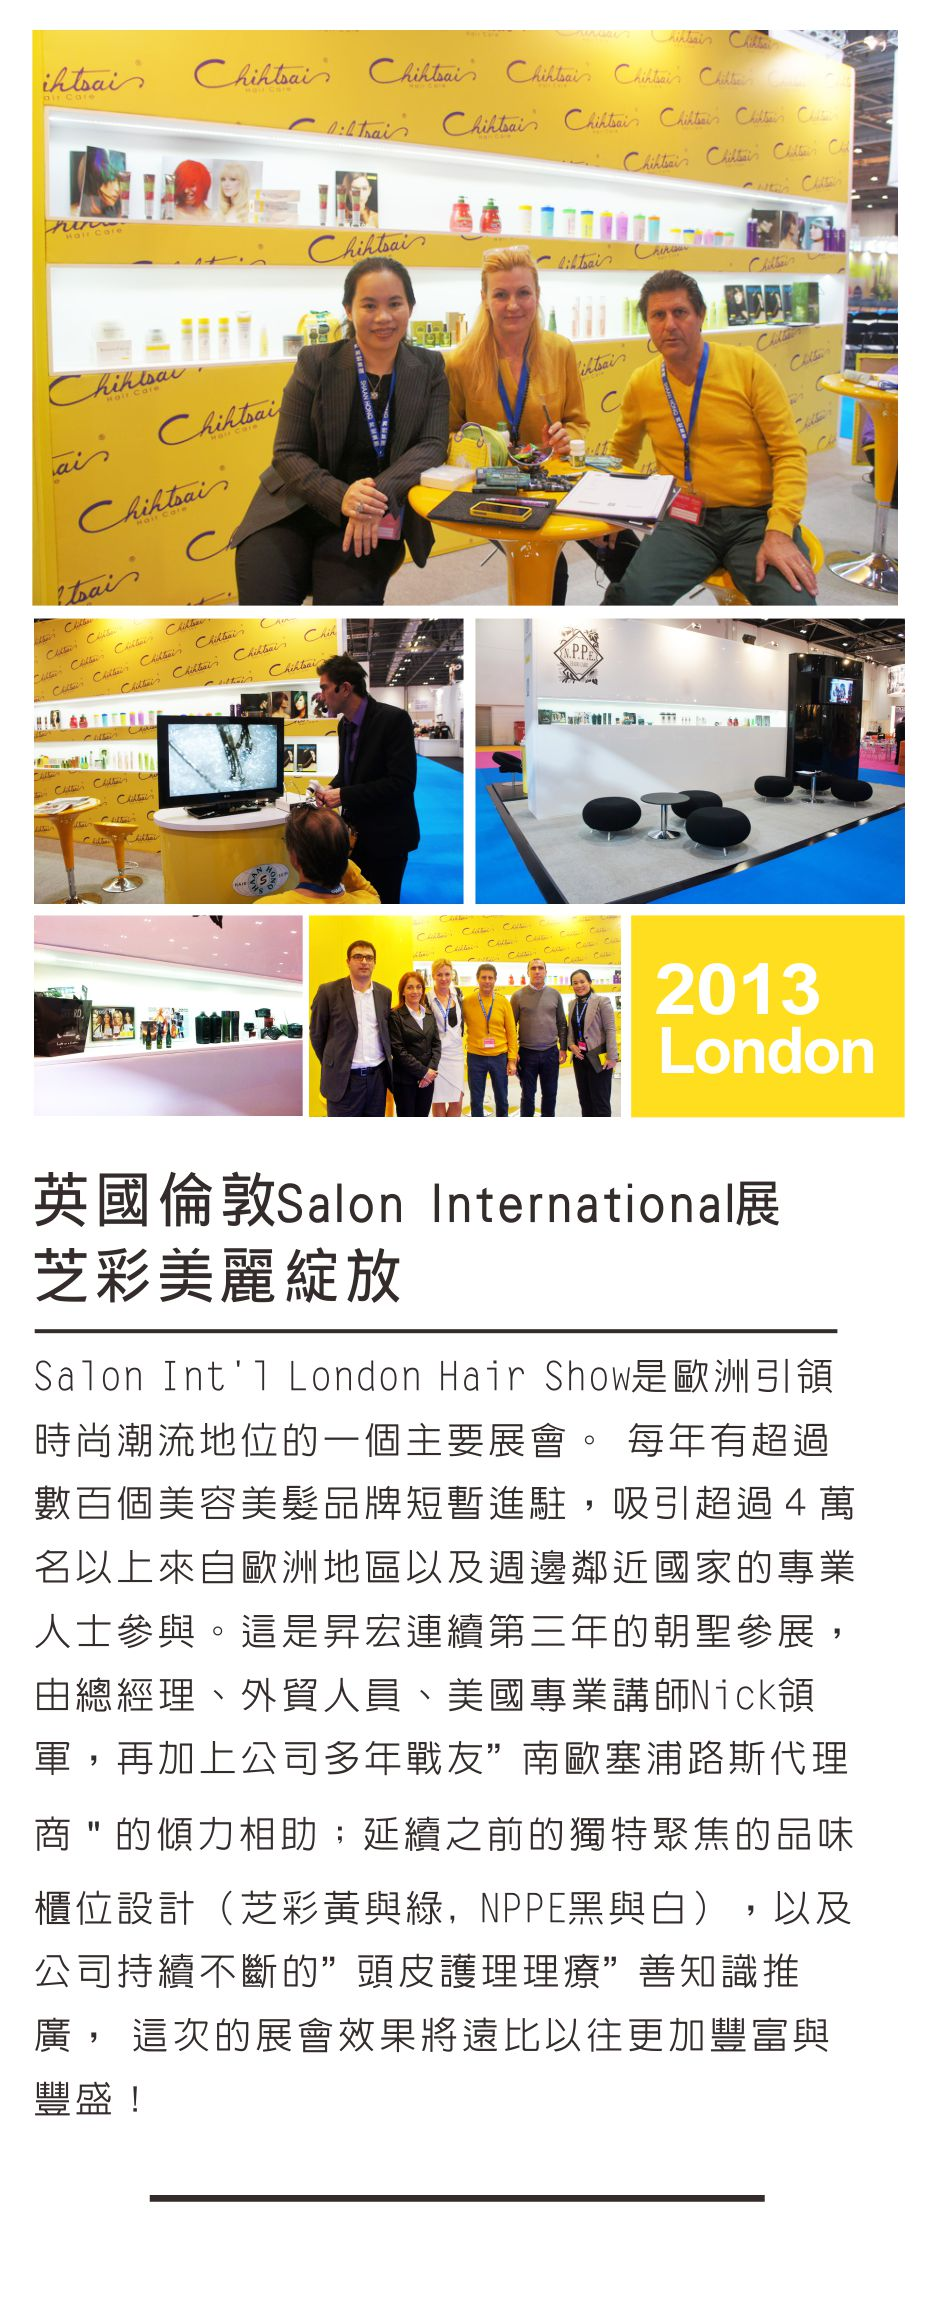 昇宏旗下芝彩&NPPE品牌參加 英國Salon lnternational 展